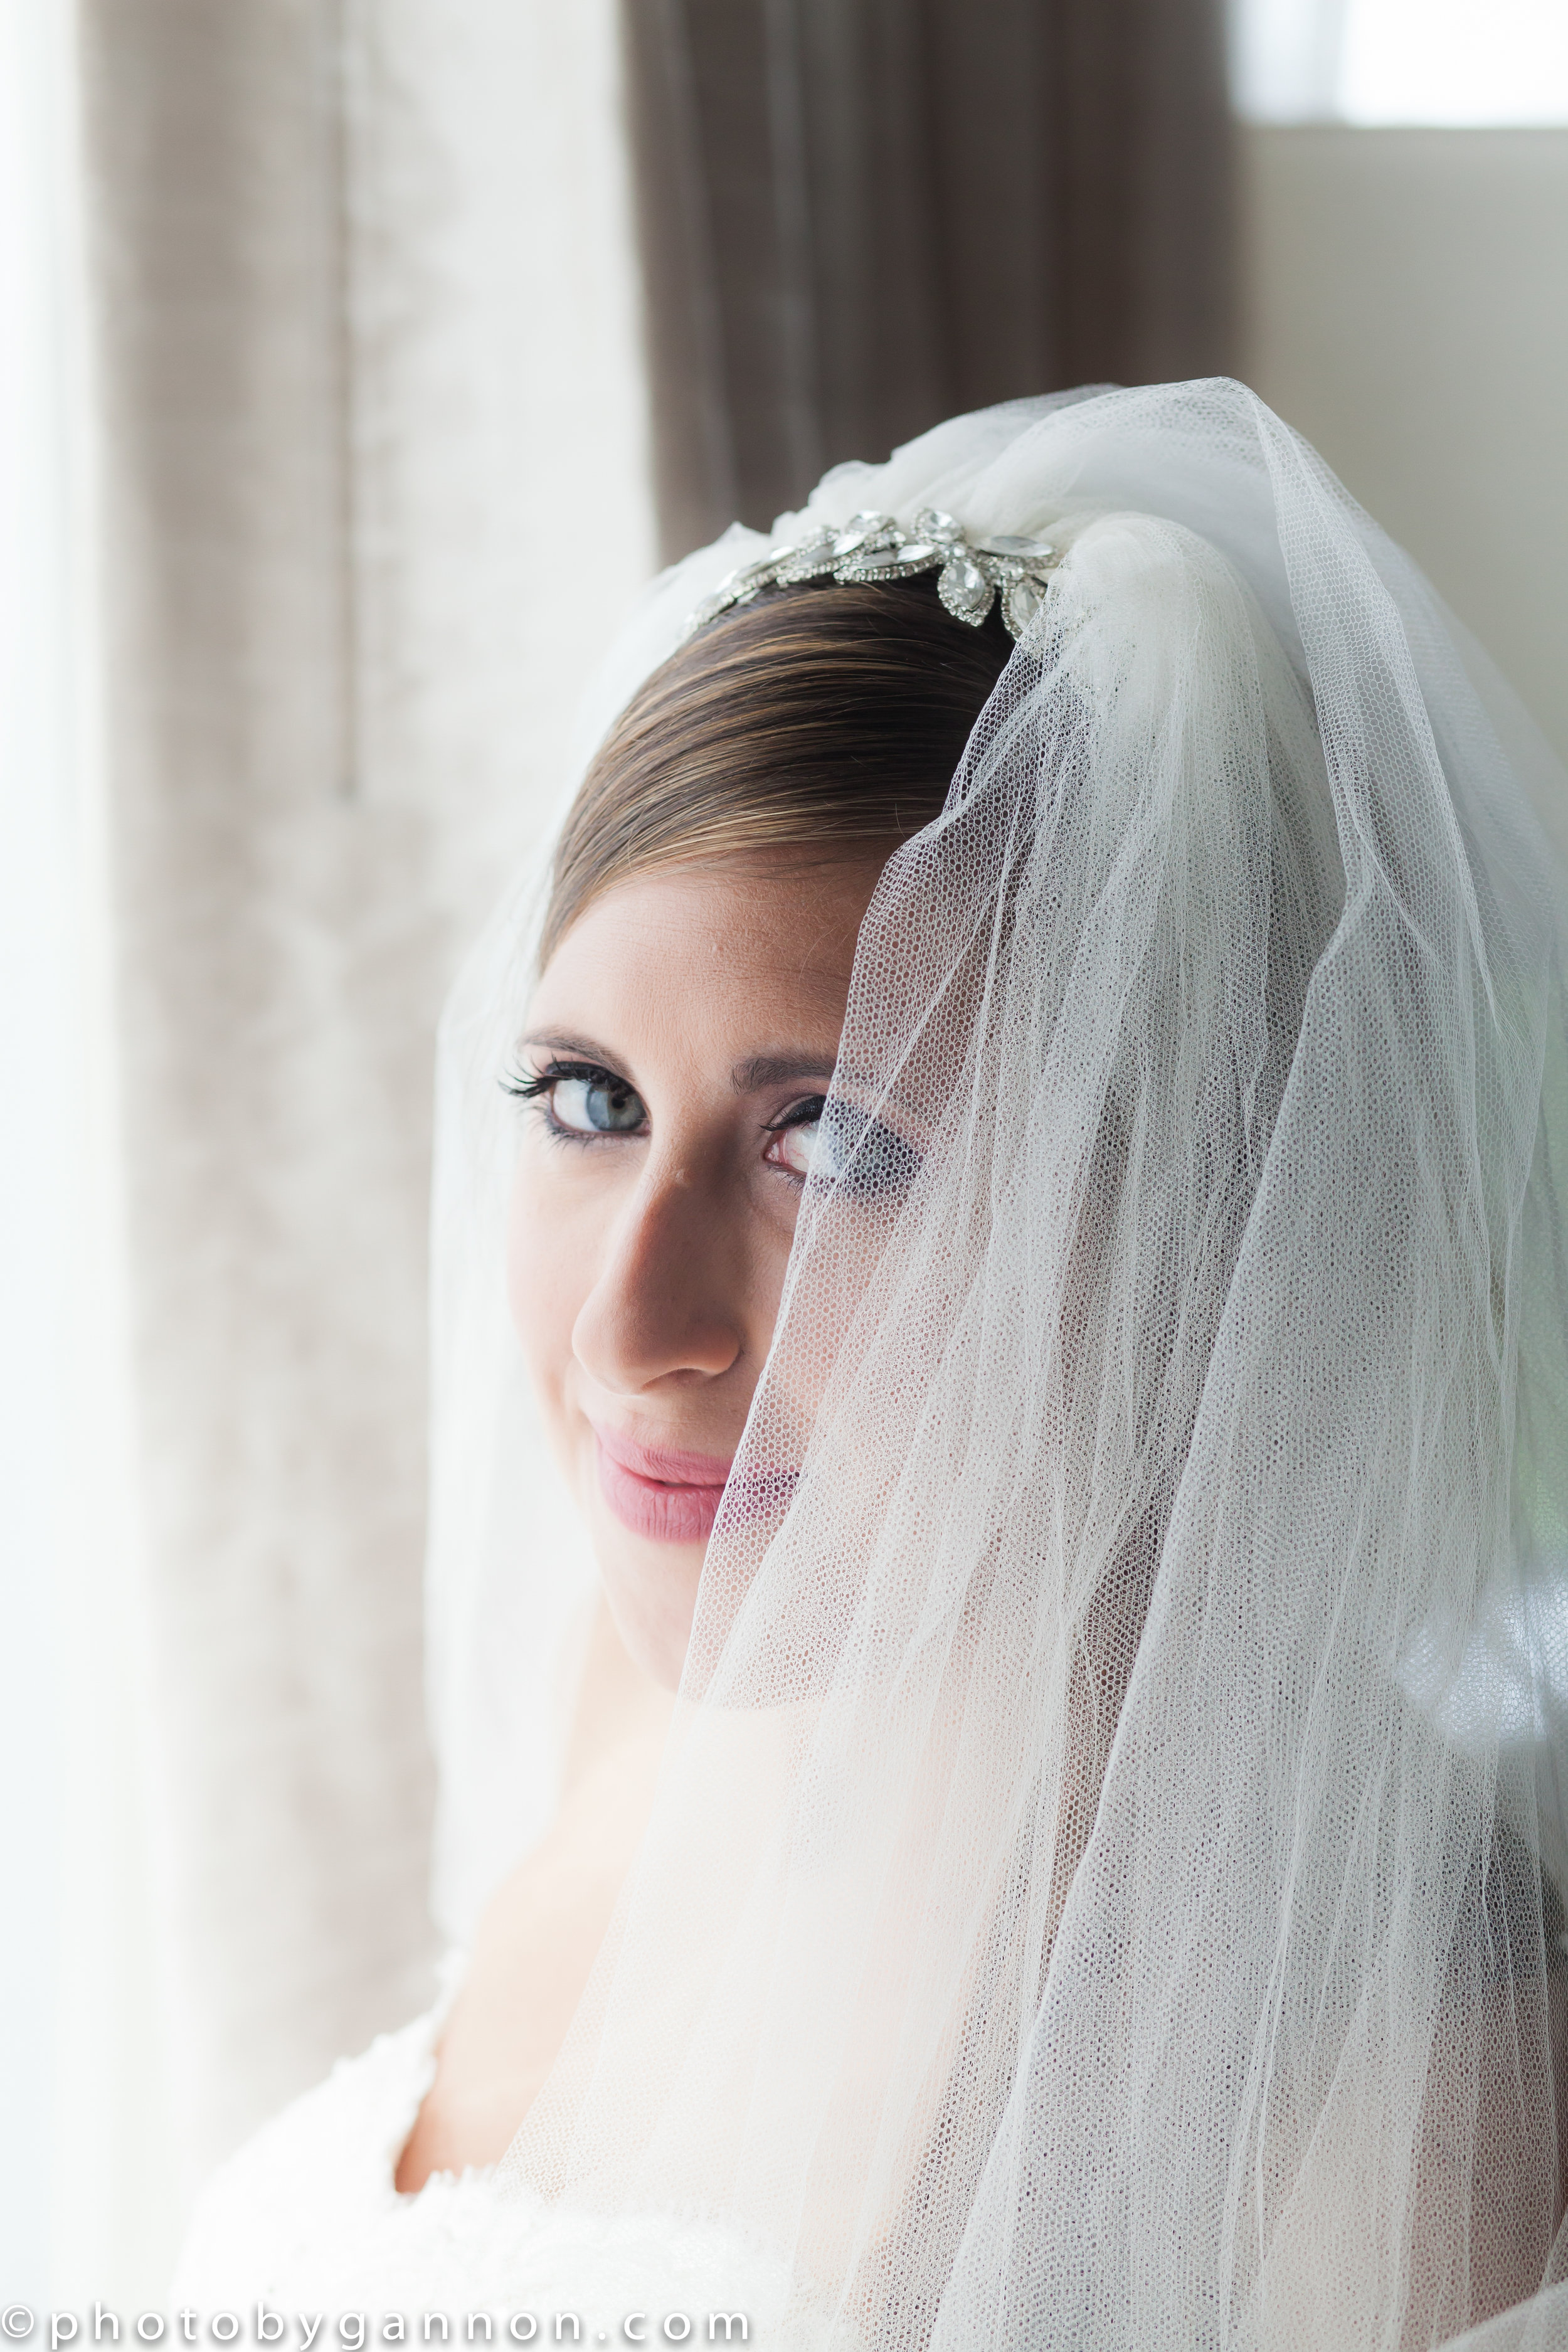 bride and veil - makeup with lace cosmetics